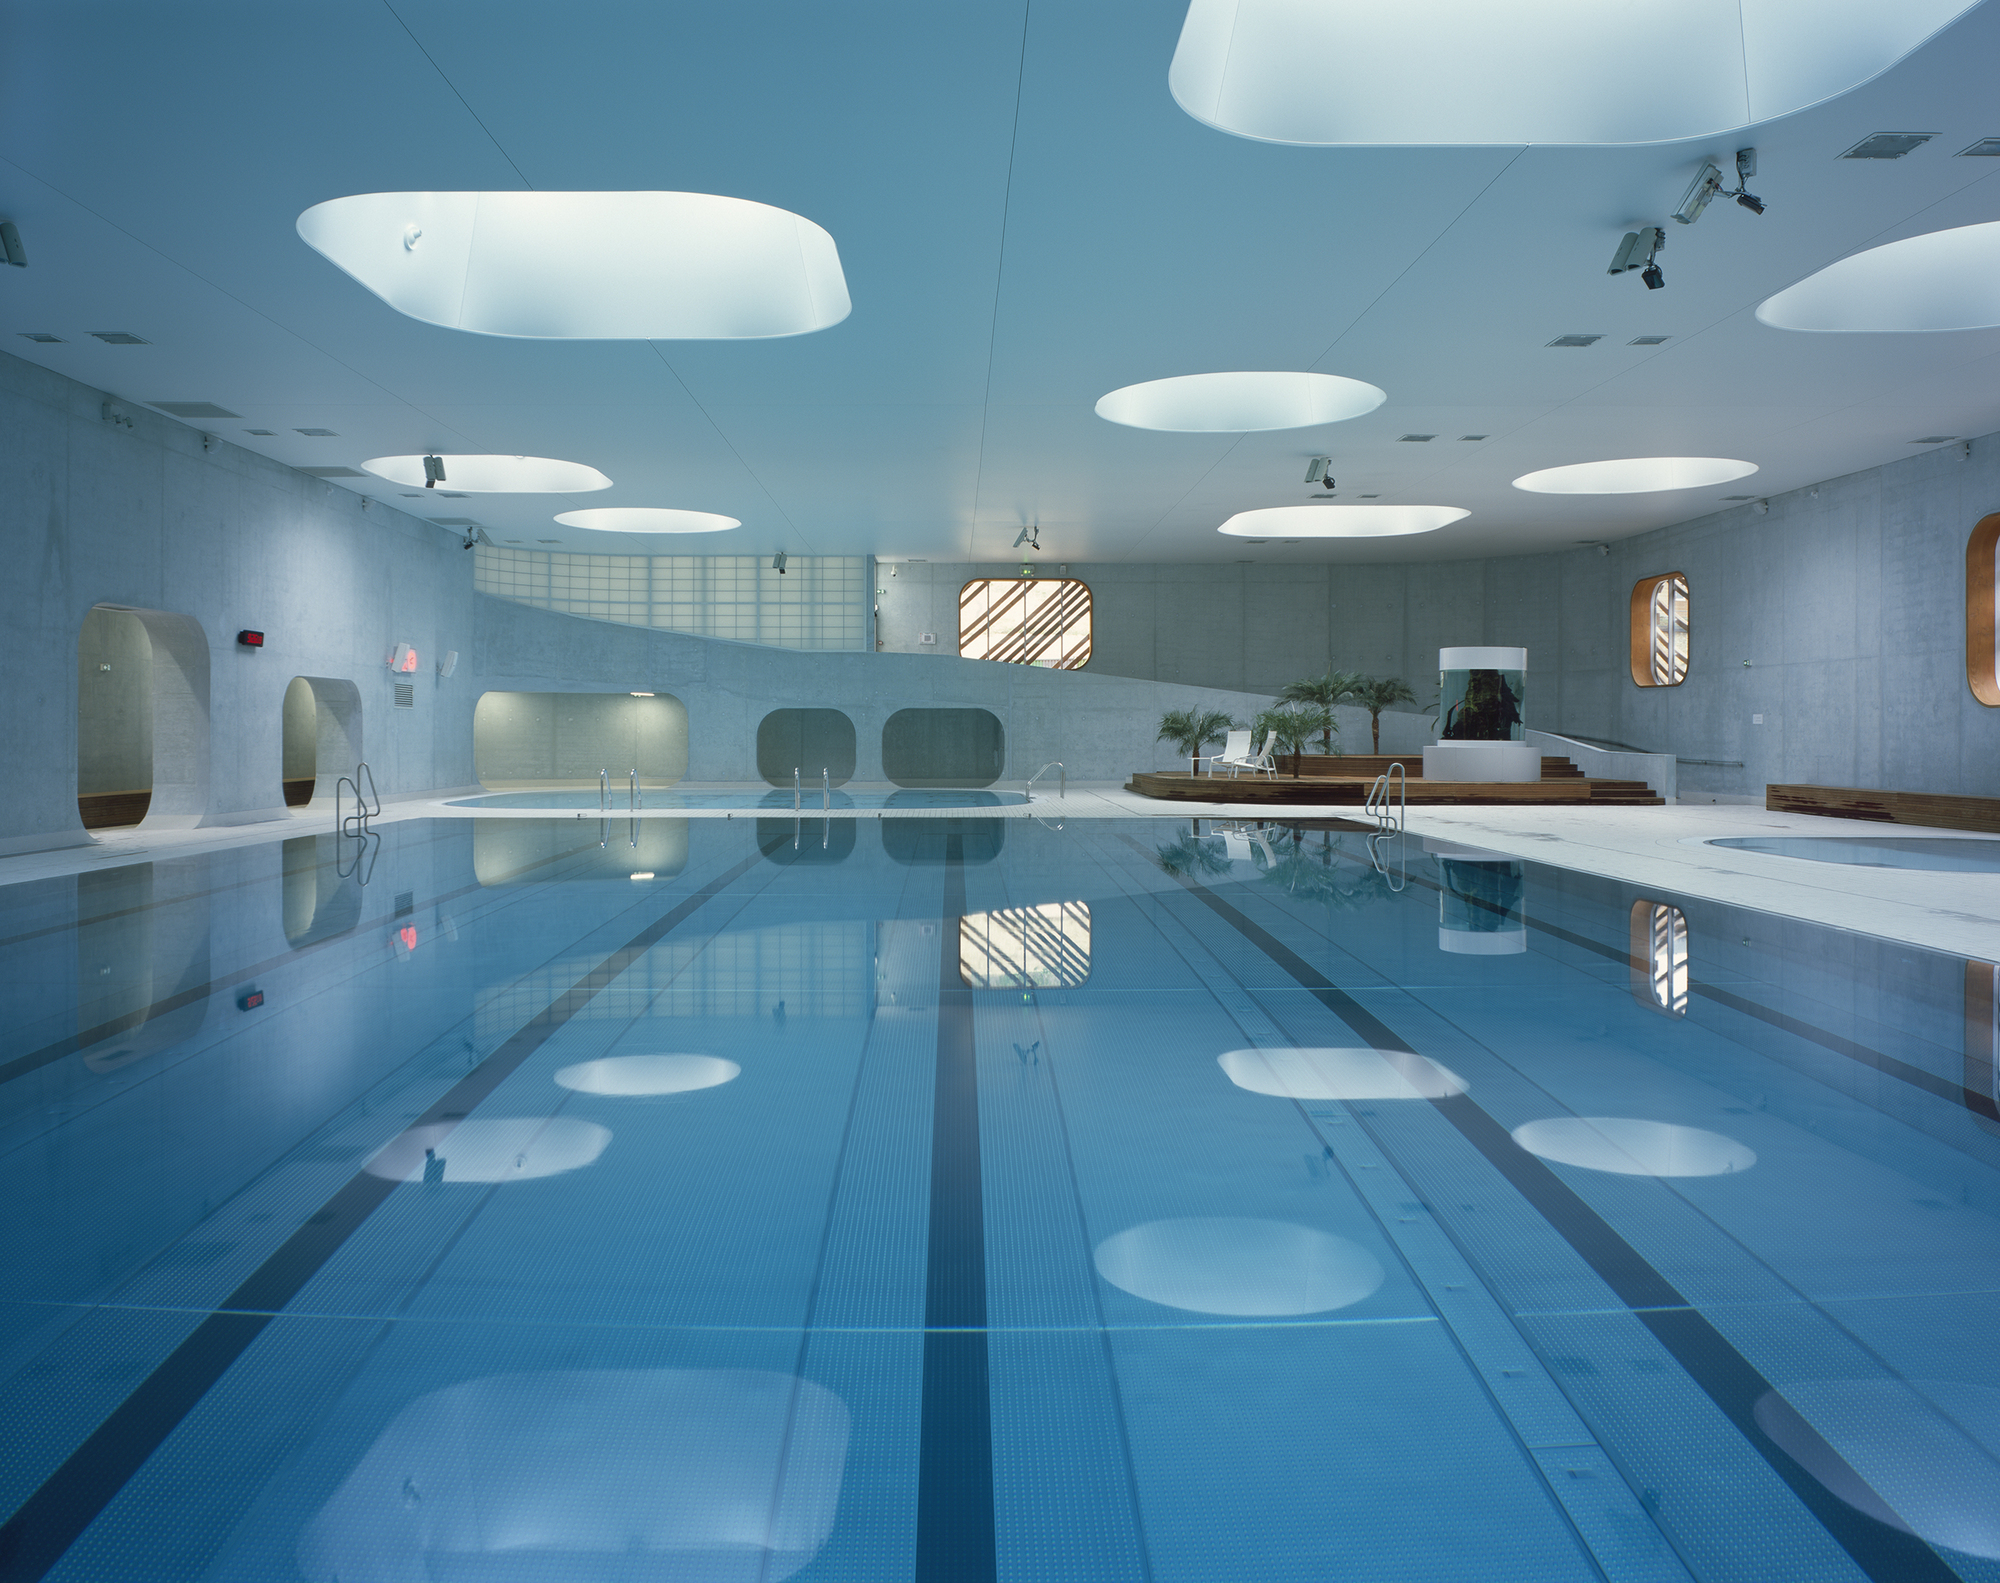 Feng shui swimming pool mikou studio archdaily for Pool design studio